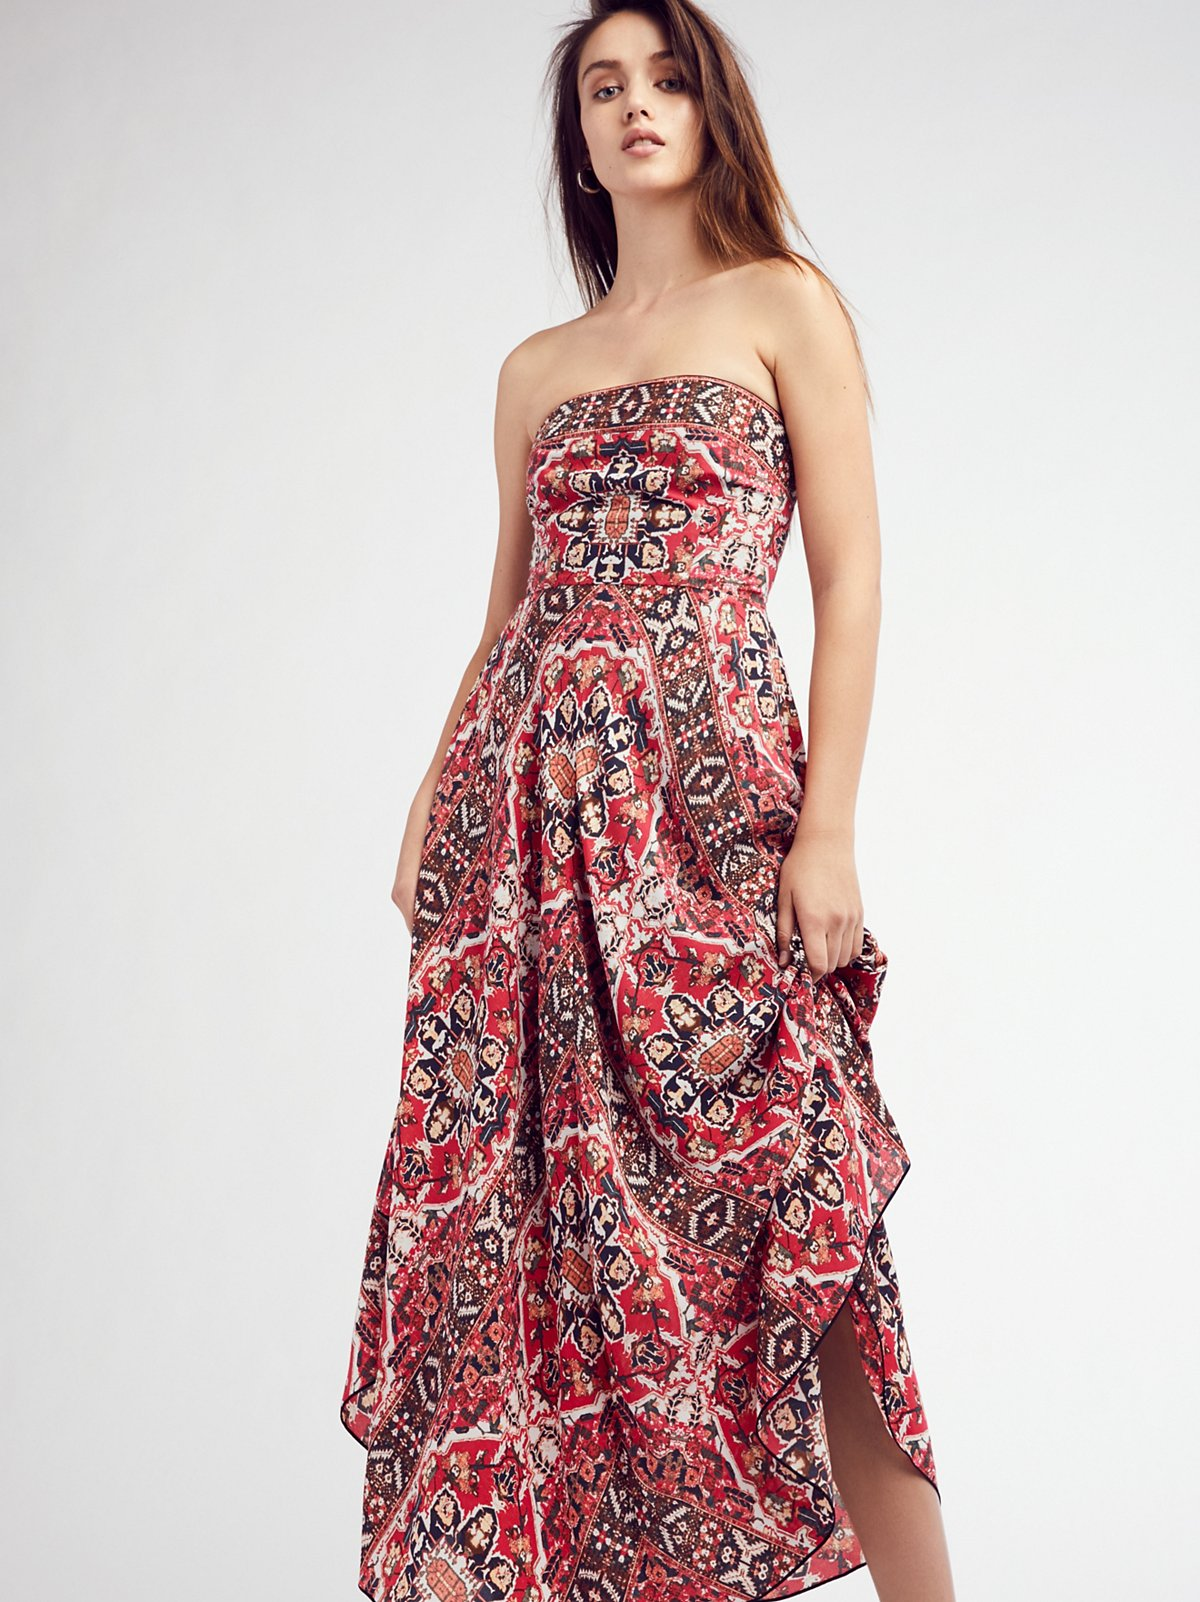 Erin's Printed Maxi Dress